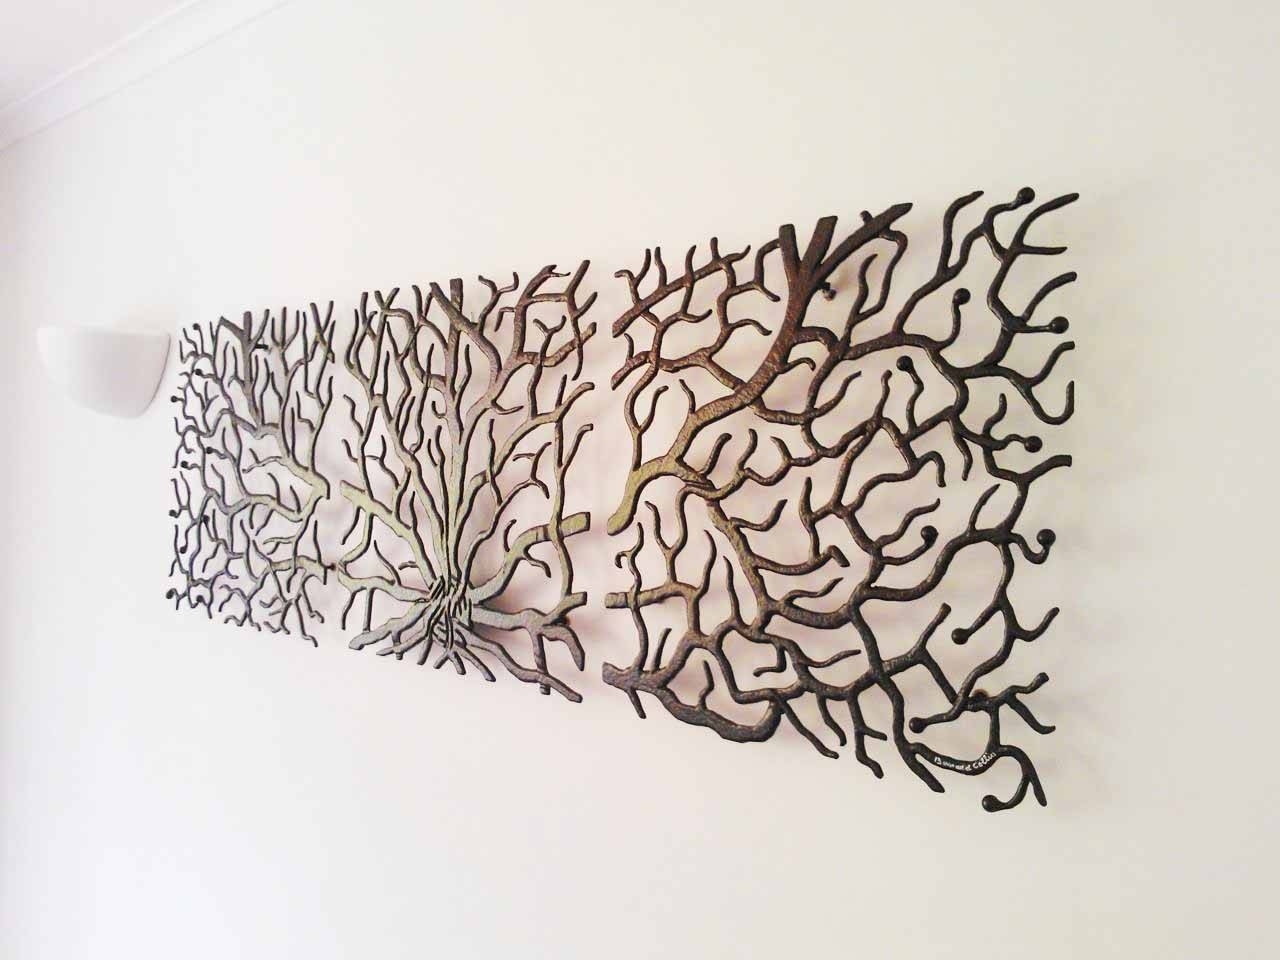 Wall Art Designs: Coral Wall Art Magnificent Metal Tree Wall Art Intended For Newest Metal Wall Art Tree (View 10 of 20)